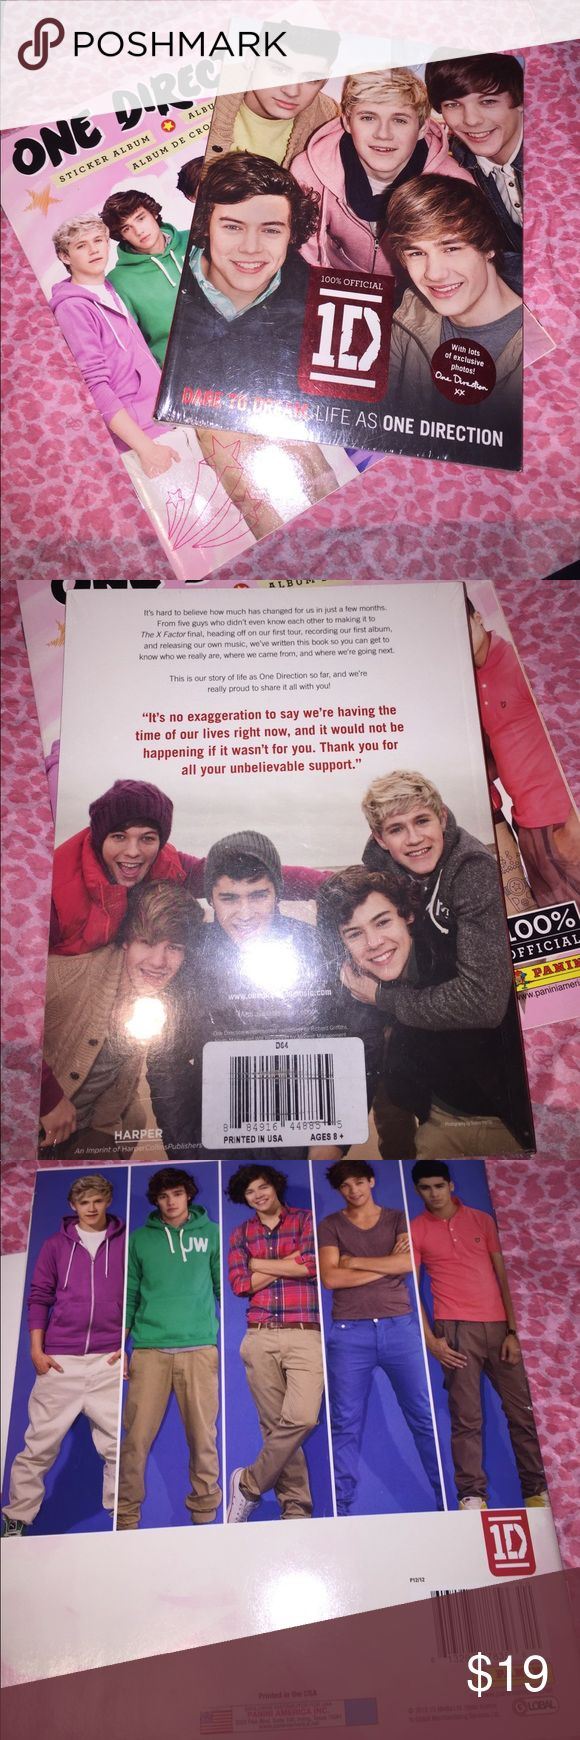 One direction book bundle One direction sticker album plus One direction dare to dream biography book Other